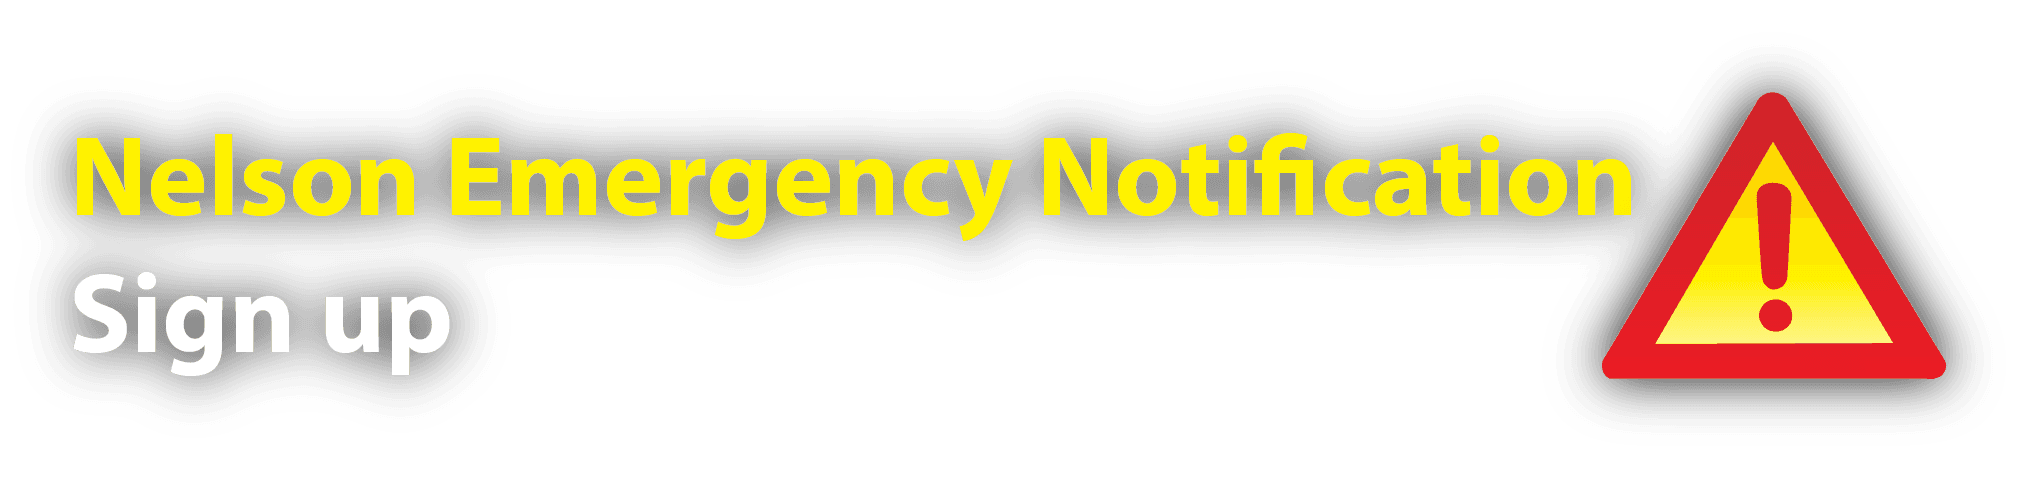 Nelson_emergency_notification_sign_up-06-06